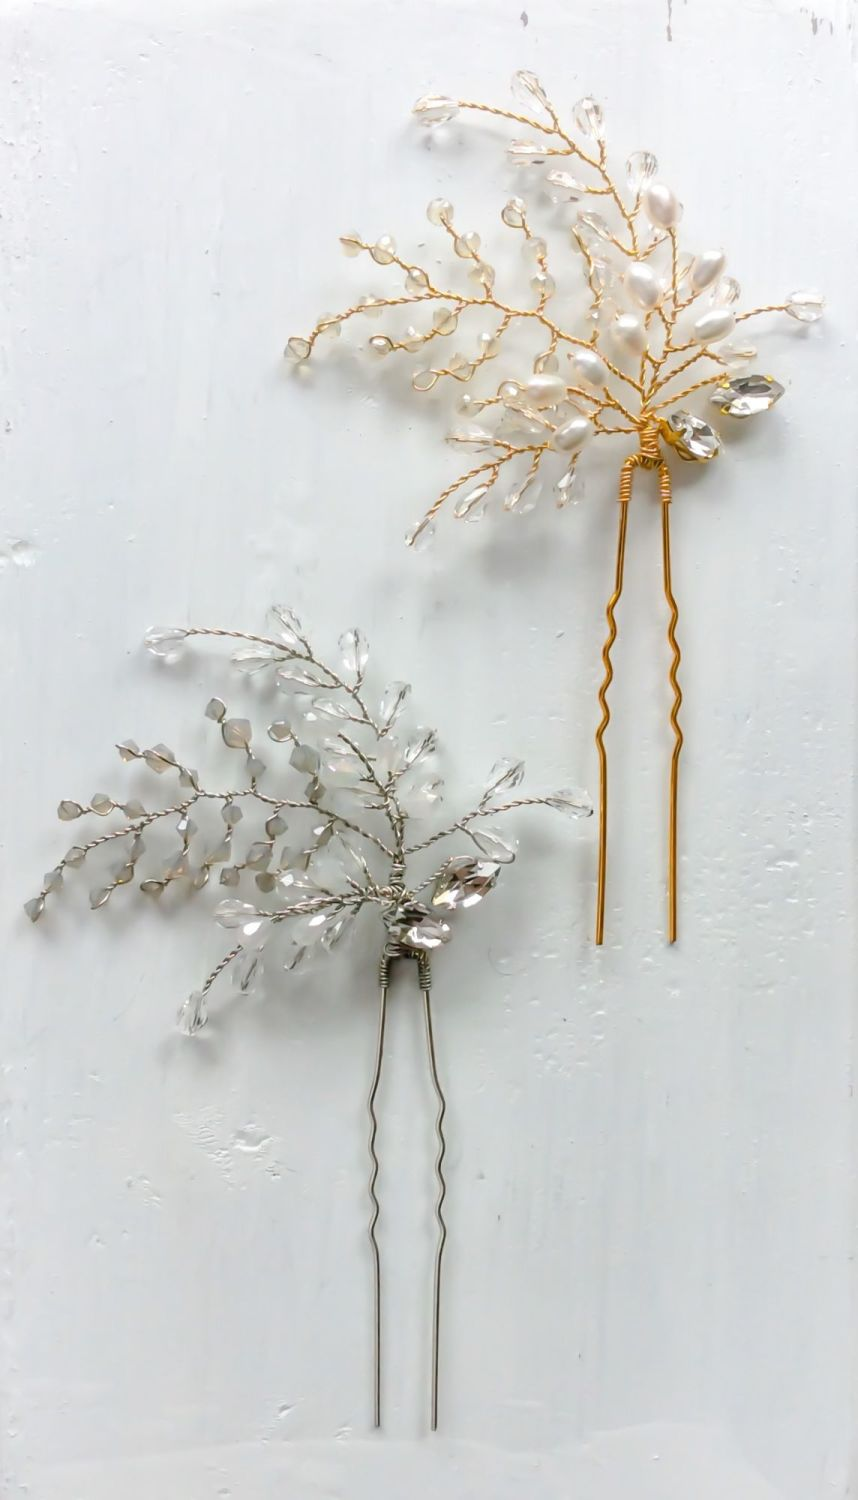 Fern jewelled hairpins in silver and gold